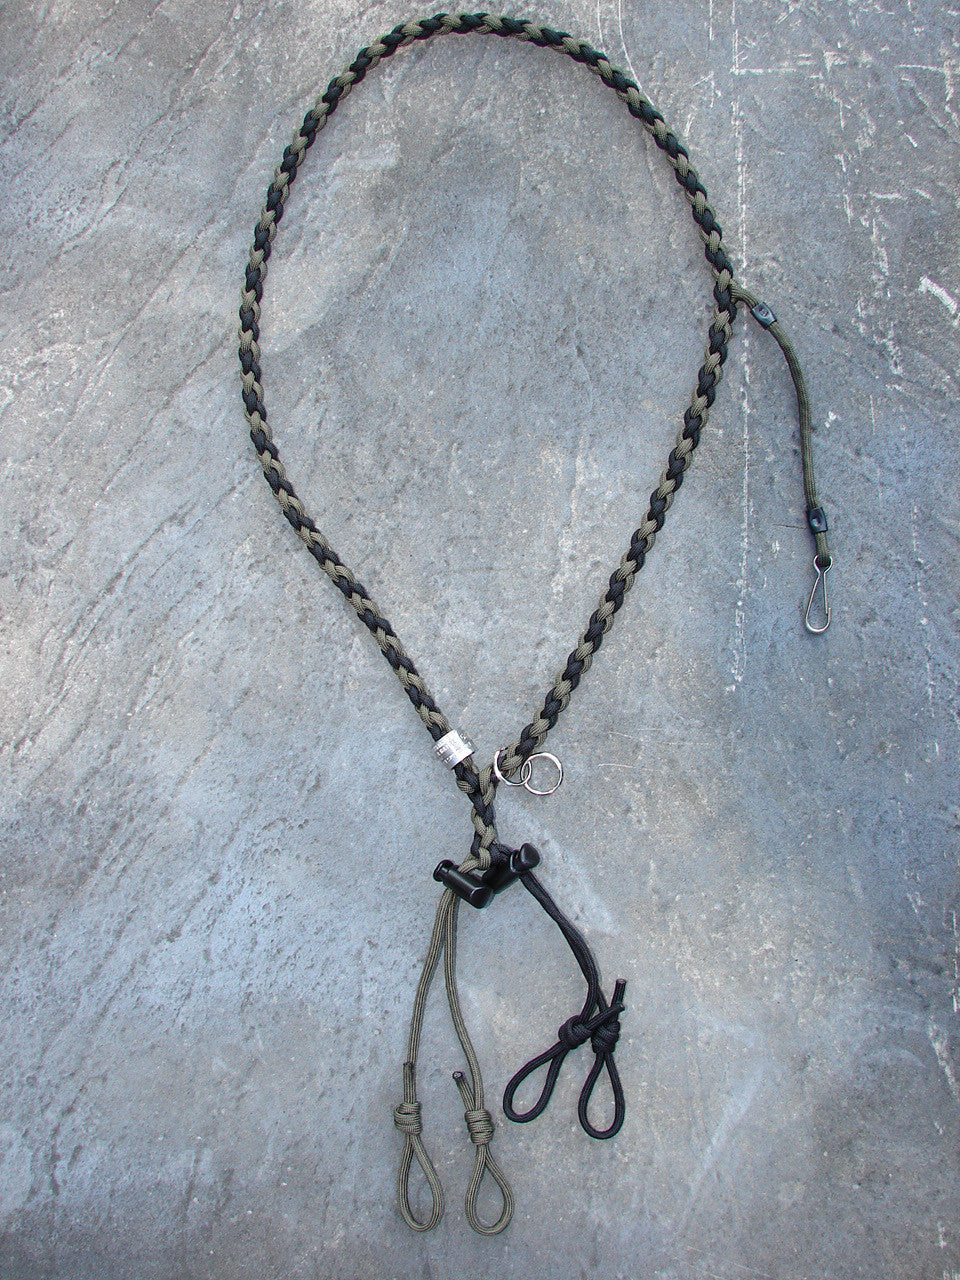 Paracord Lanyard for 2 calls and whistle - round braid